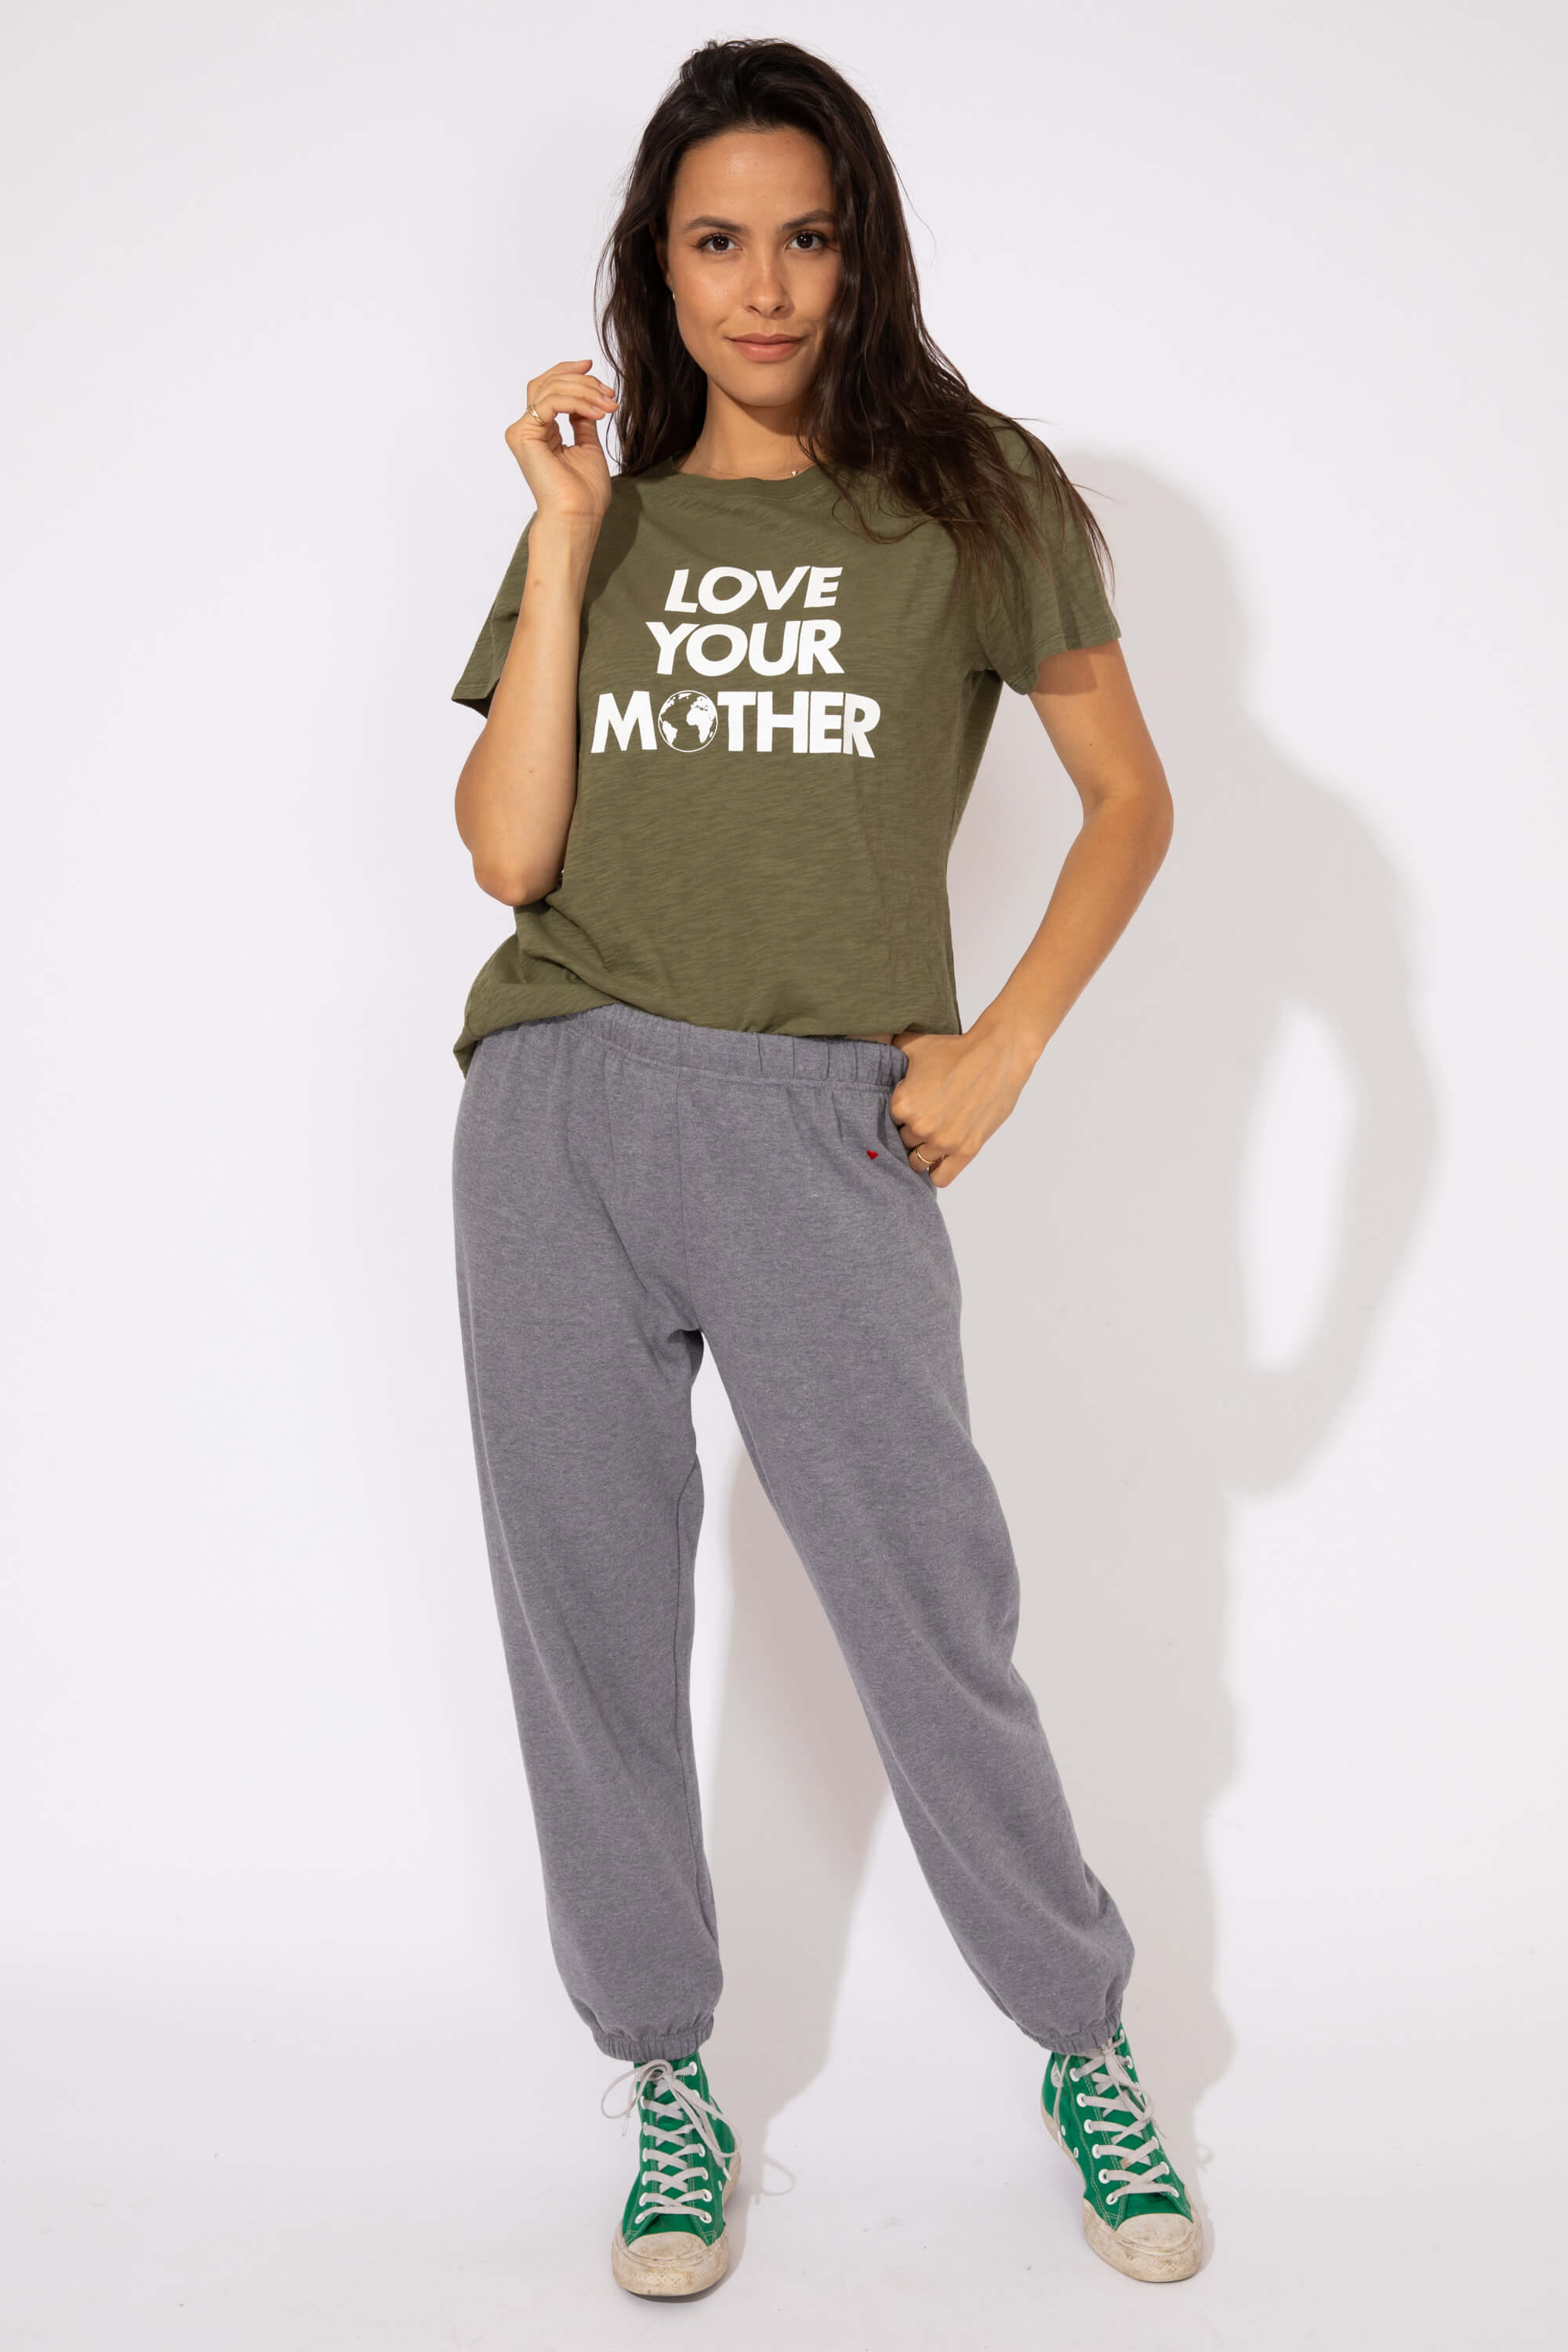 HEART EMB UNDERGRAD SWEATS - HTHR